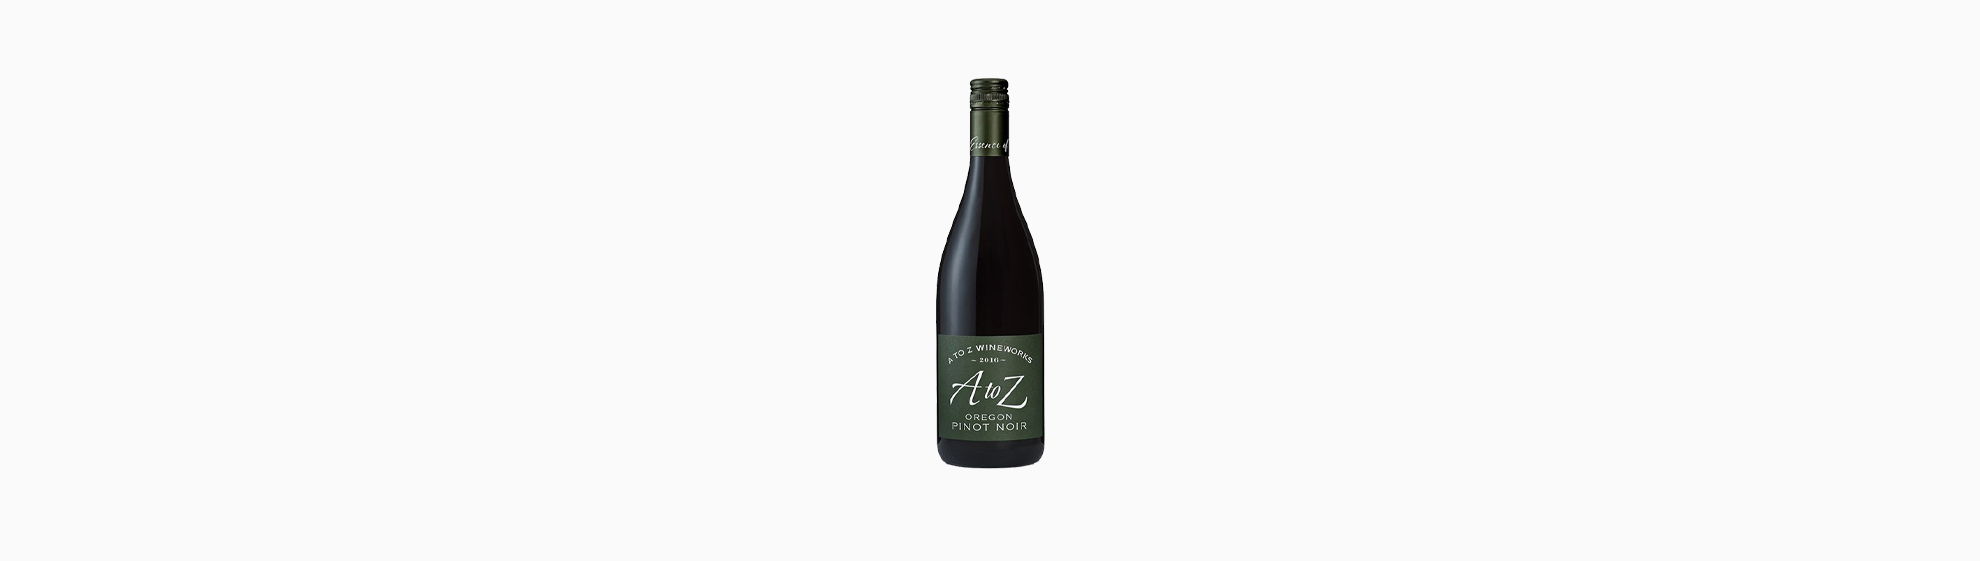 Wine bottle of A to Z Oregon Pinot Noir 2016